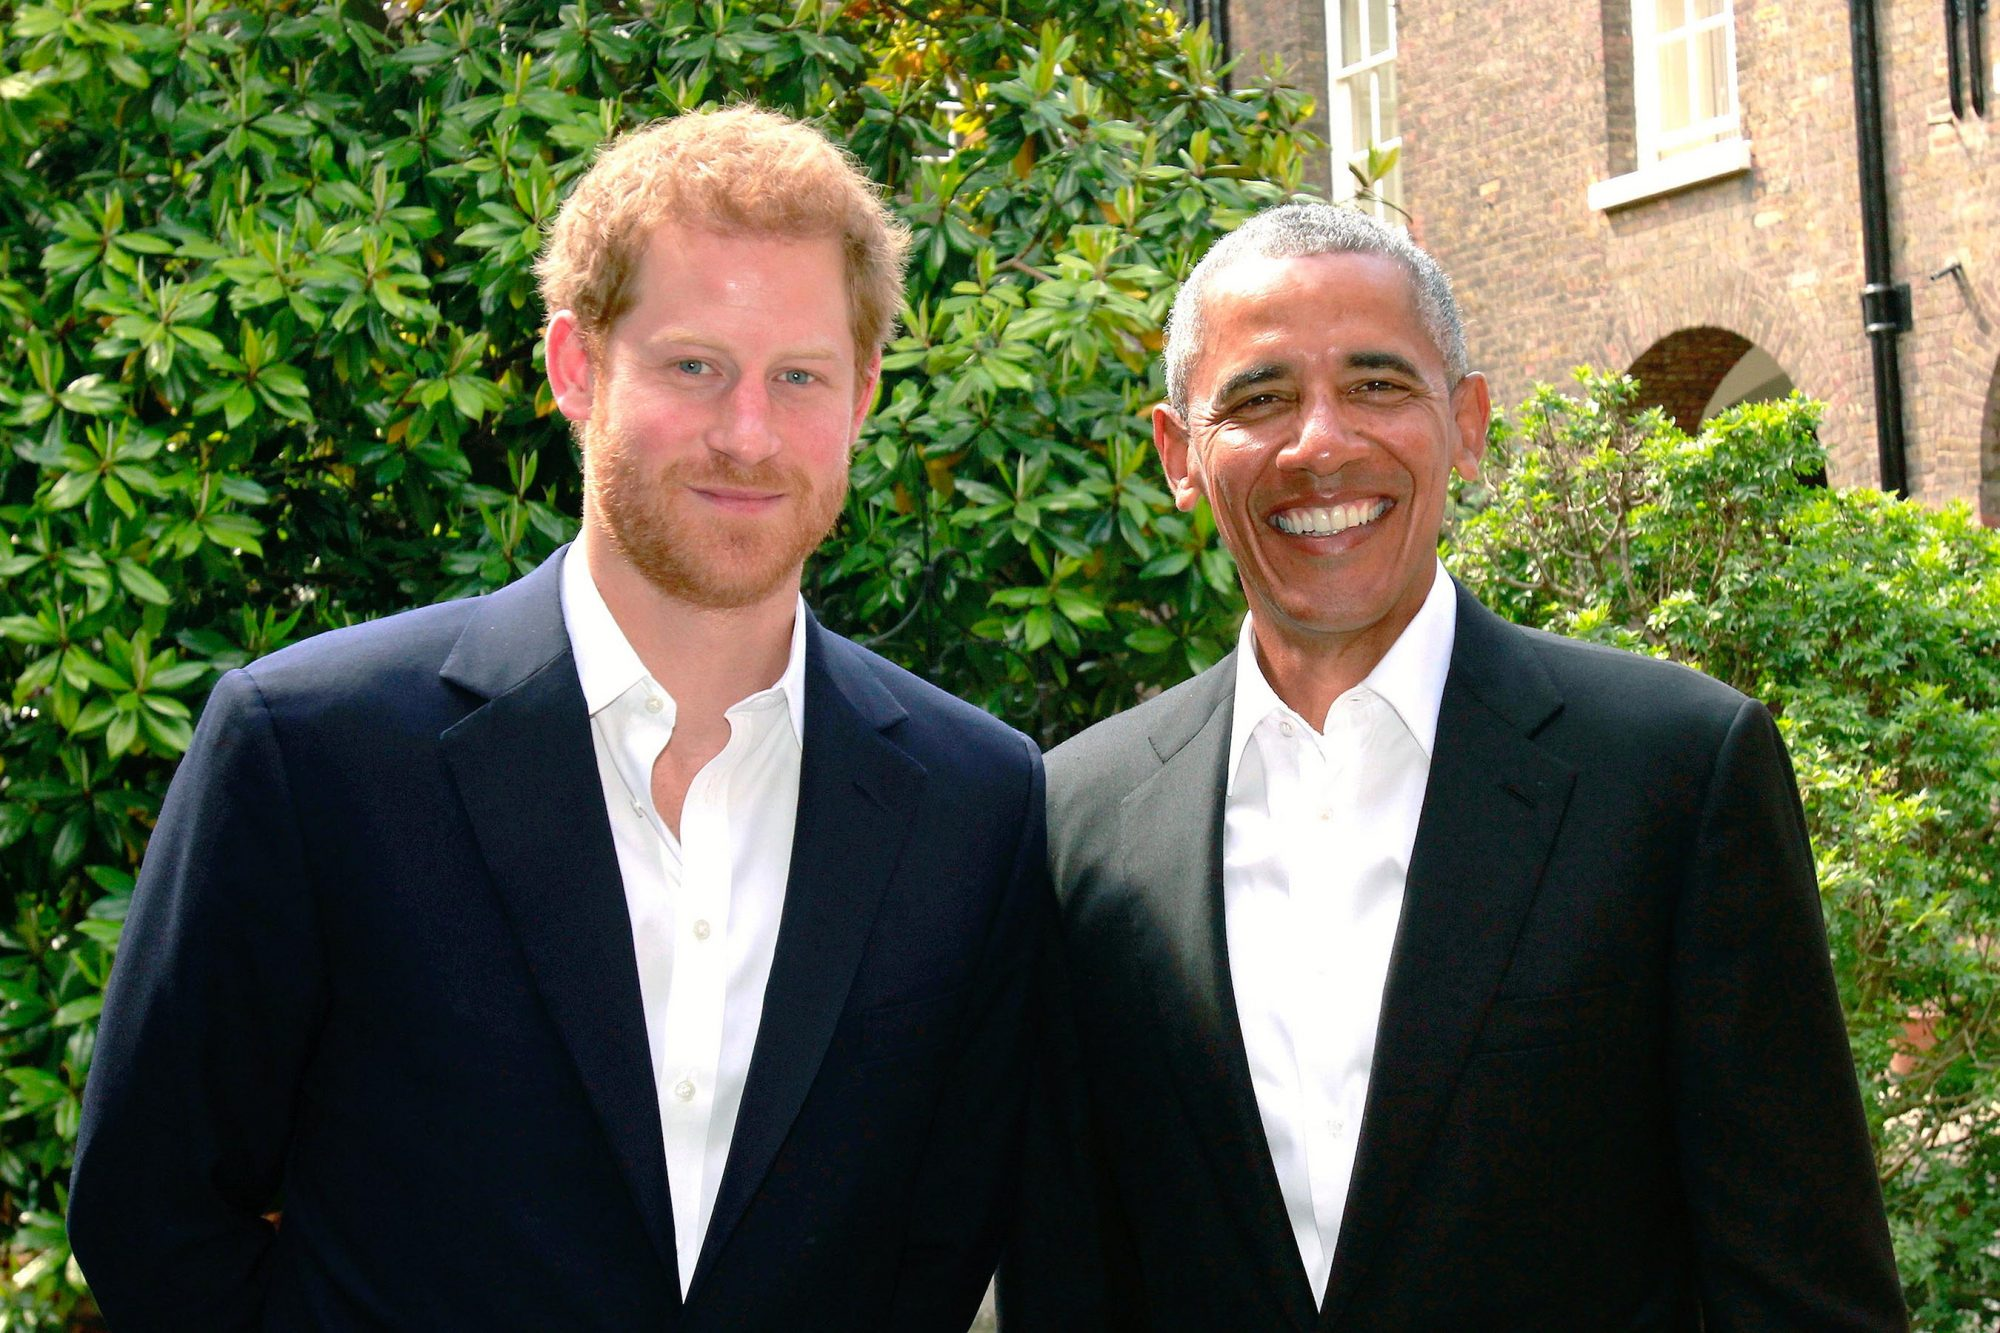 Prince Harry Meets Former US President Barack Obama